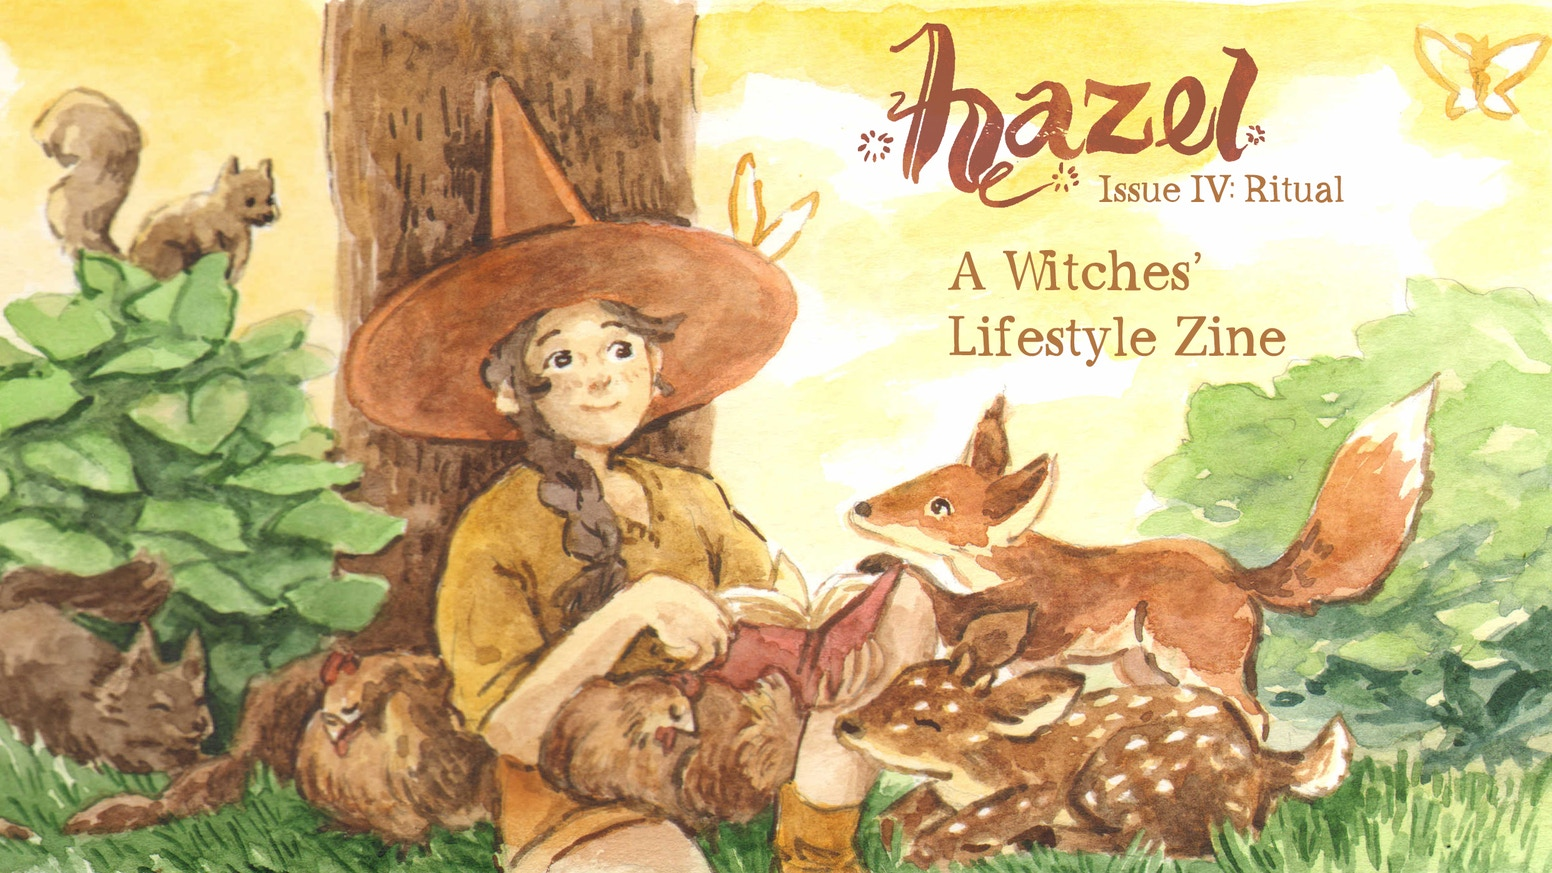 The fourth in a series of witches' lifestyle zines, collecting works of wonderfully talented artists for the young witch in training.